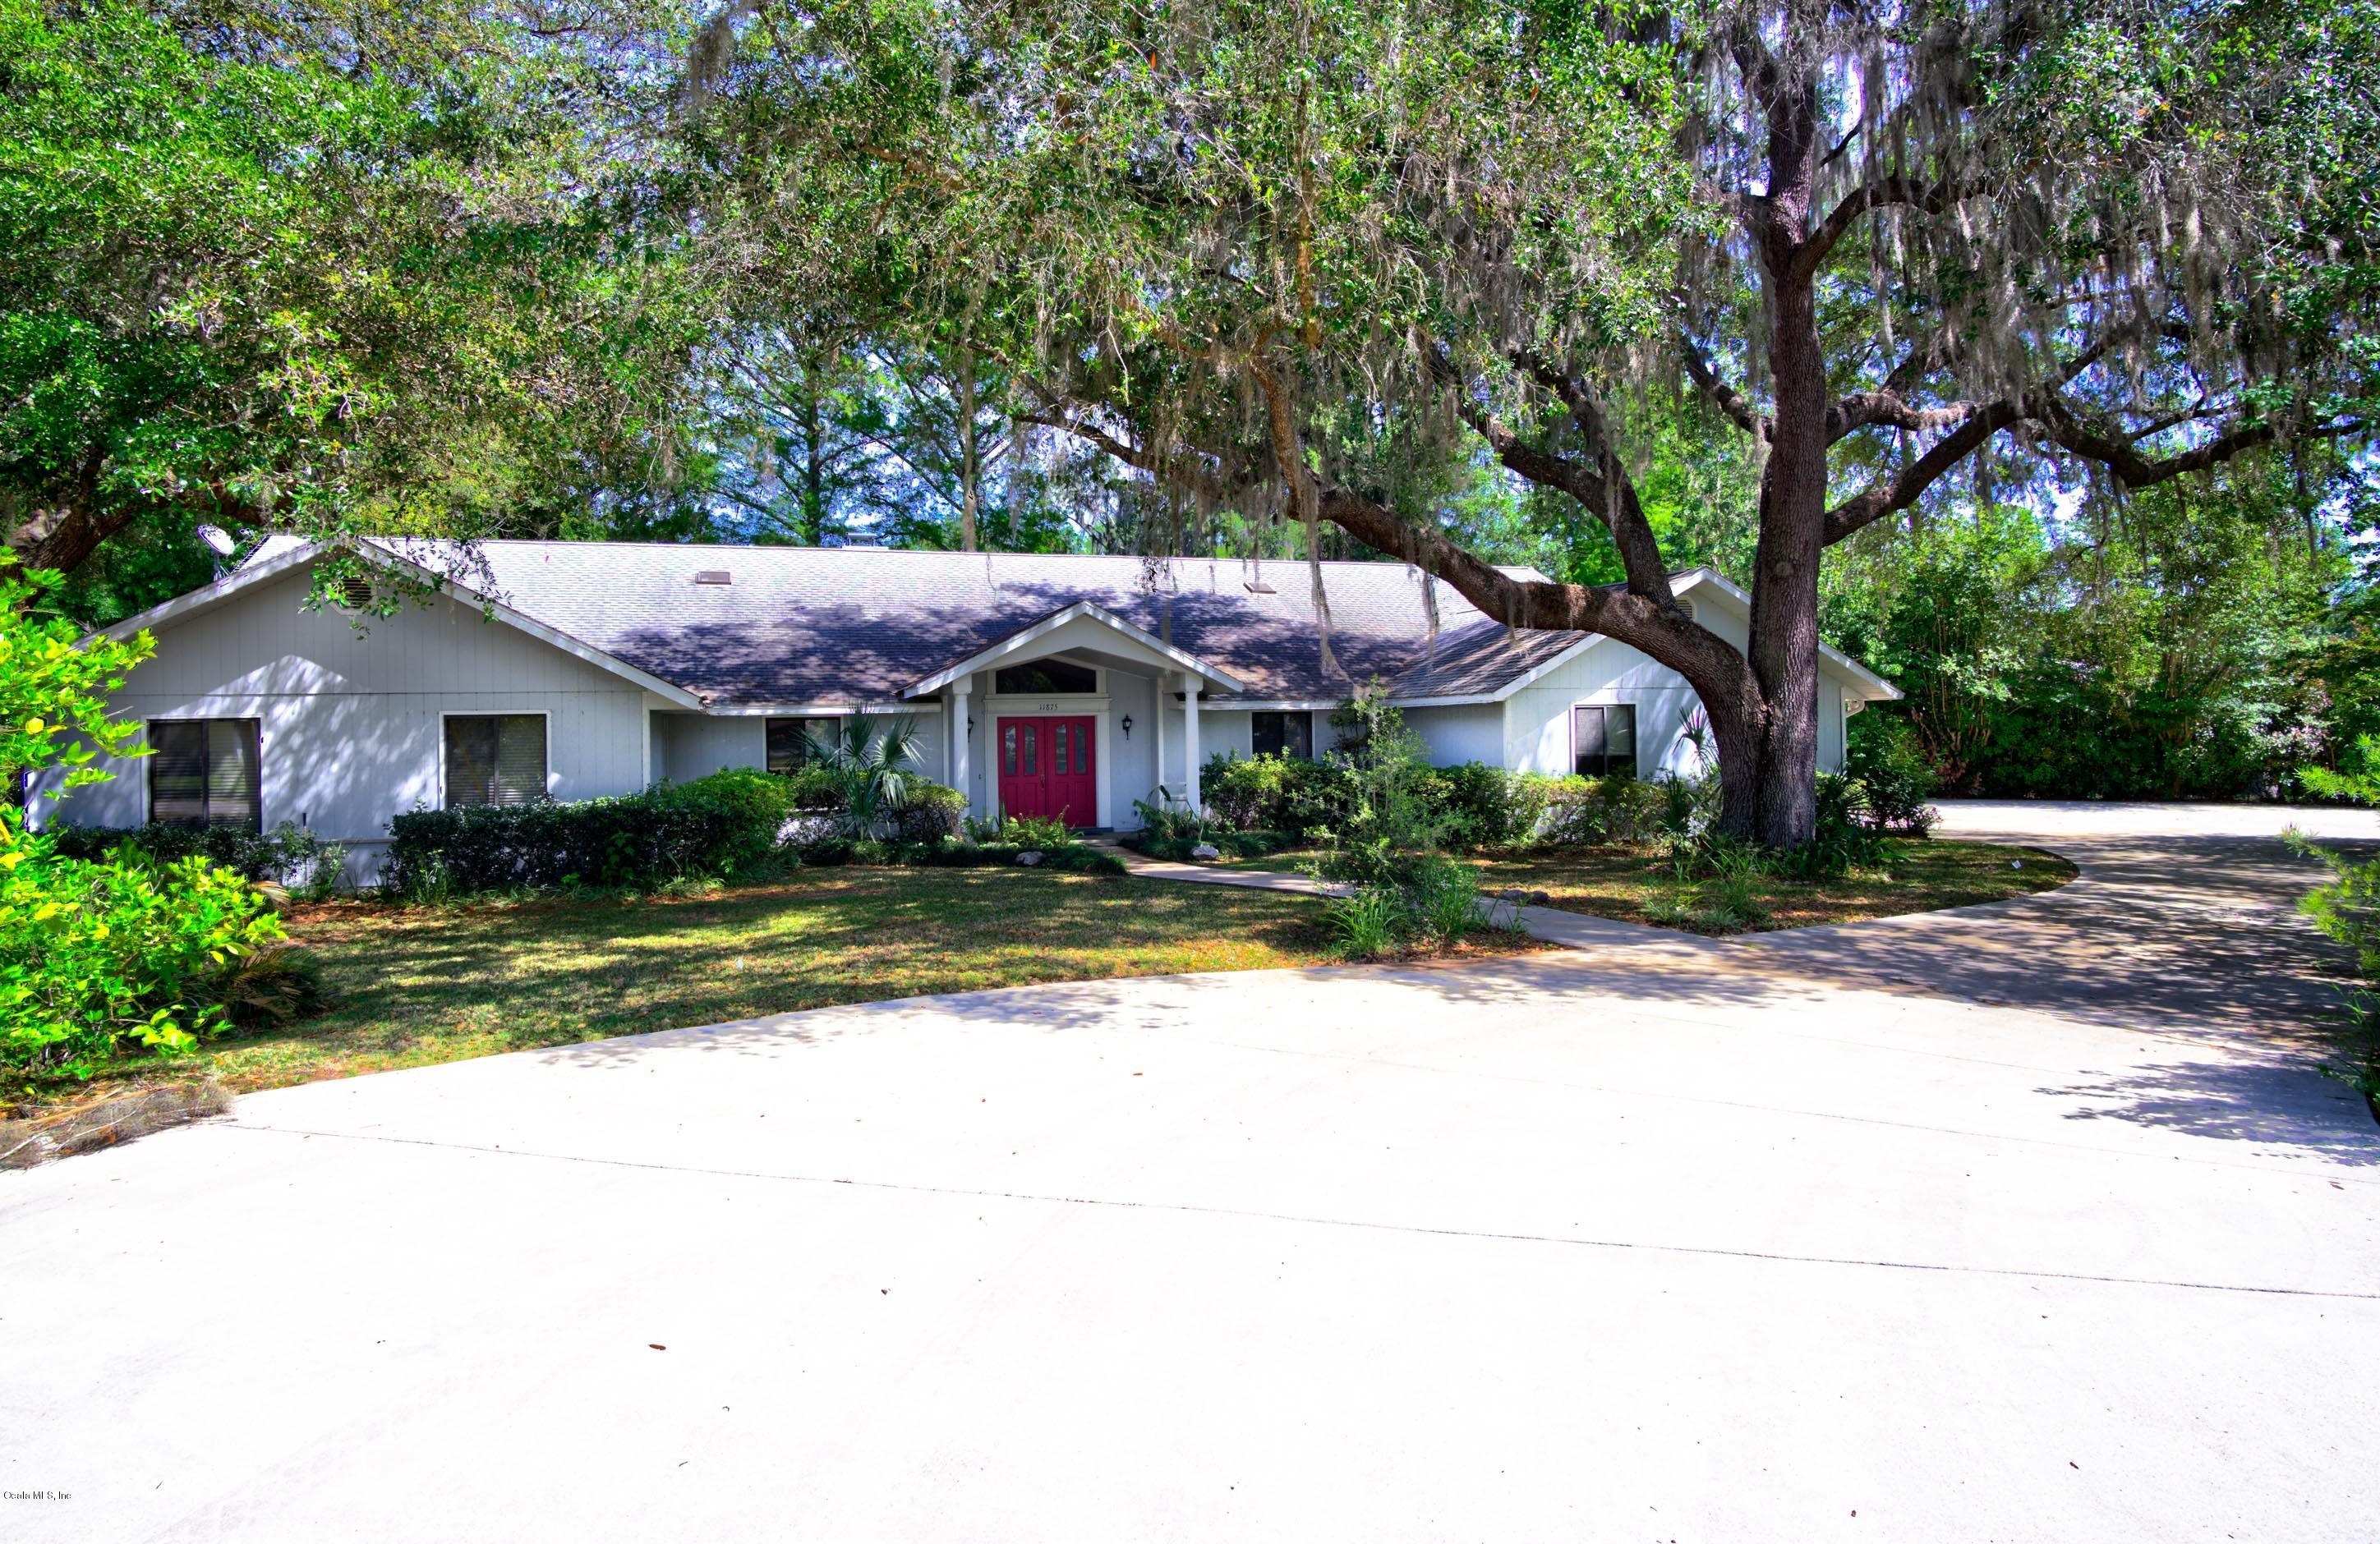 11875 E BLUE COVE DRIVE, DUNNELLON, FL 34432